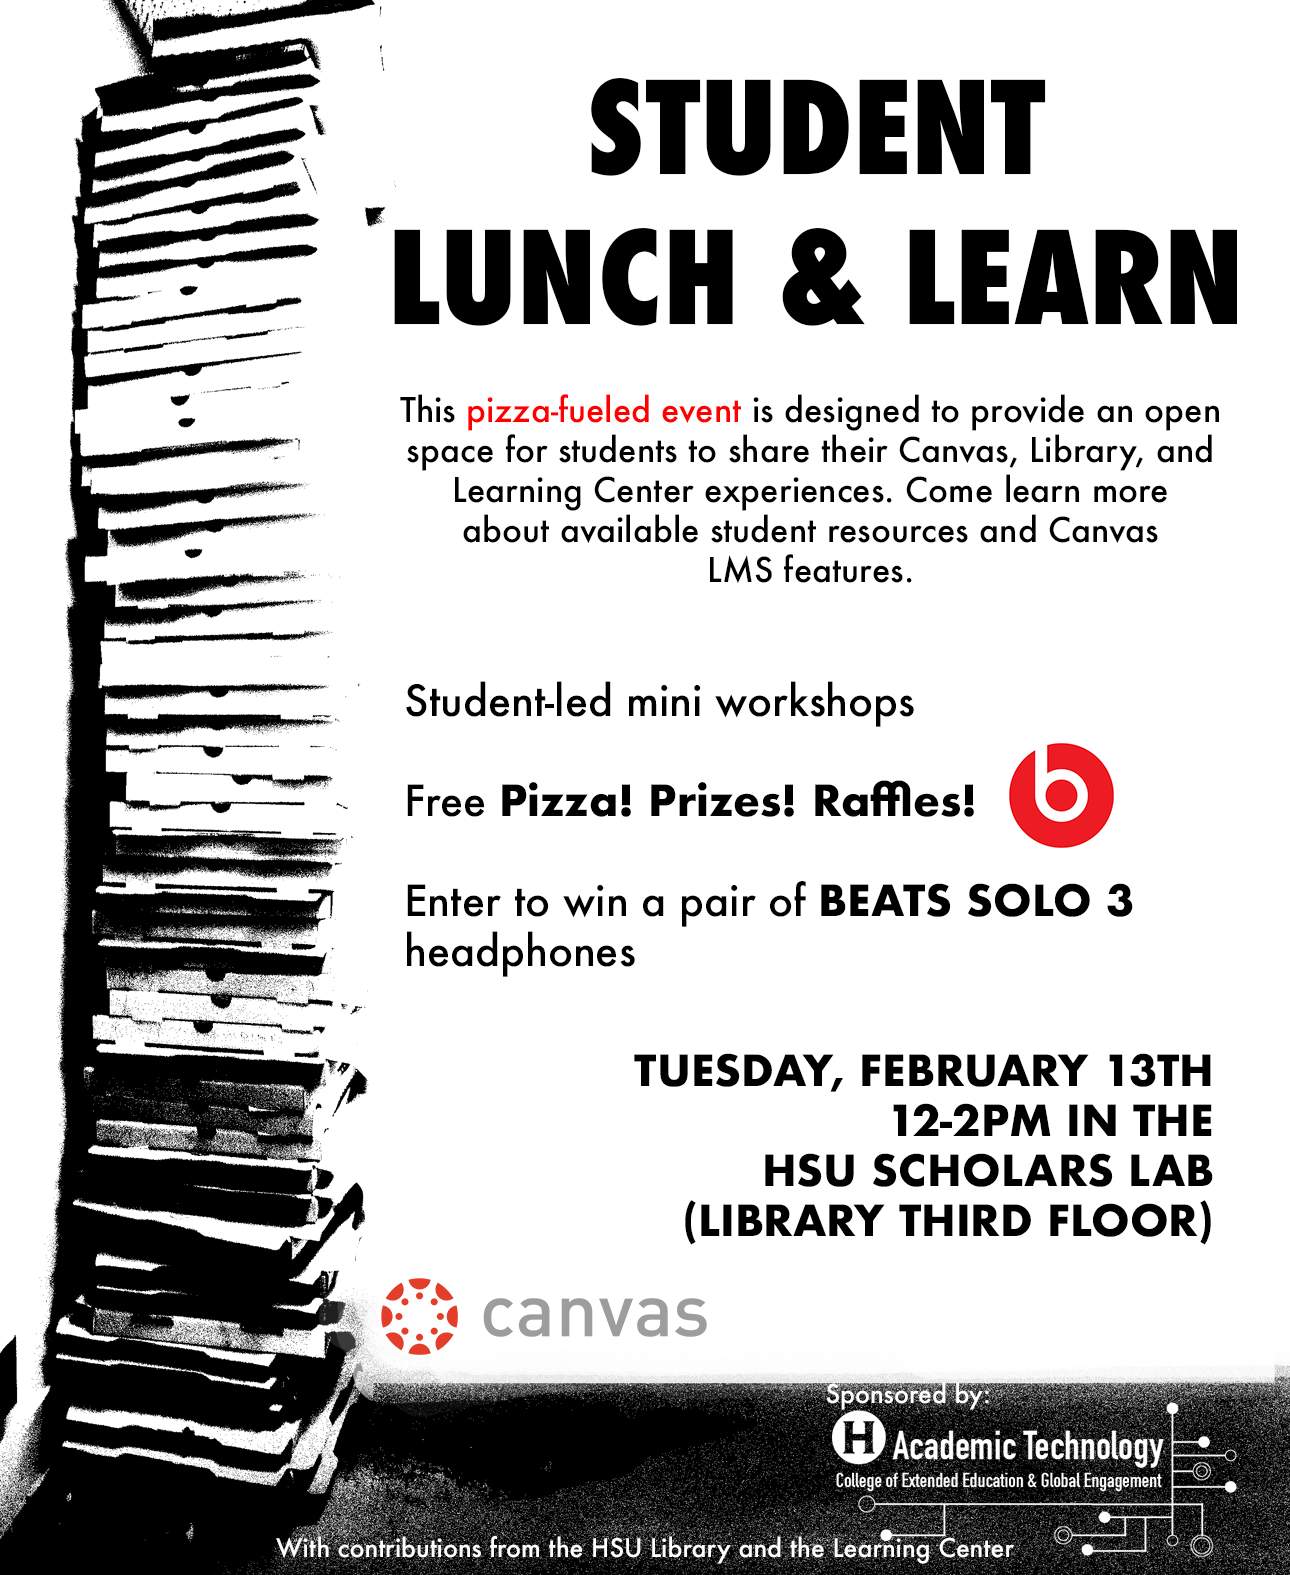 Student Lunch and Learn. This pizza-fueled event is designed to provide an open space for students to share their Canvas, Library, and Learning Center experiences.Free Pizza. Tuesday, February 13th. 12 to 2 p.m. in the HSU scholars lab.